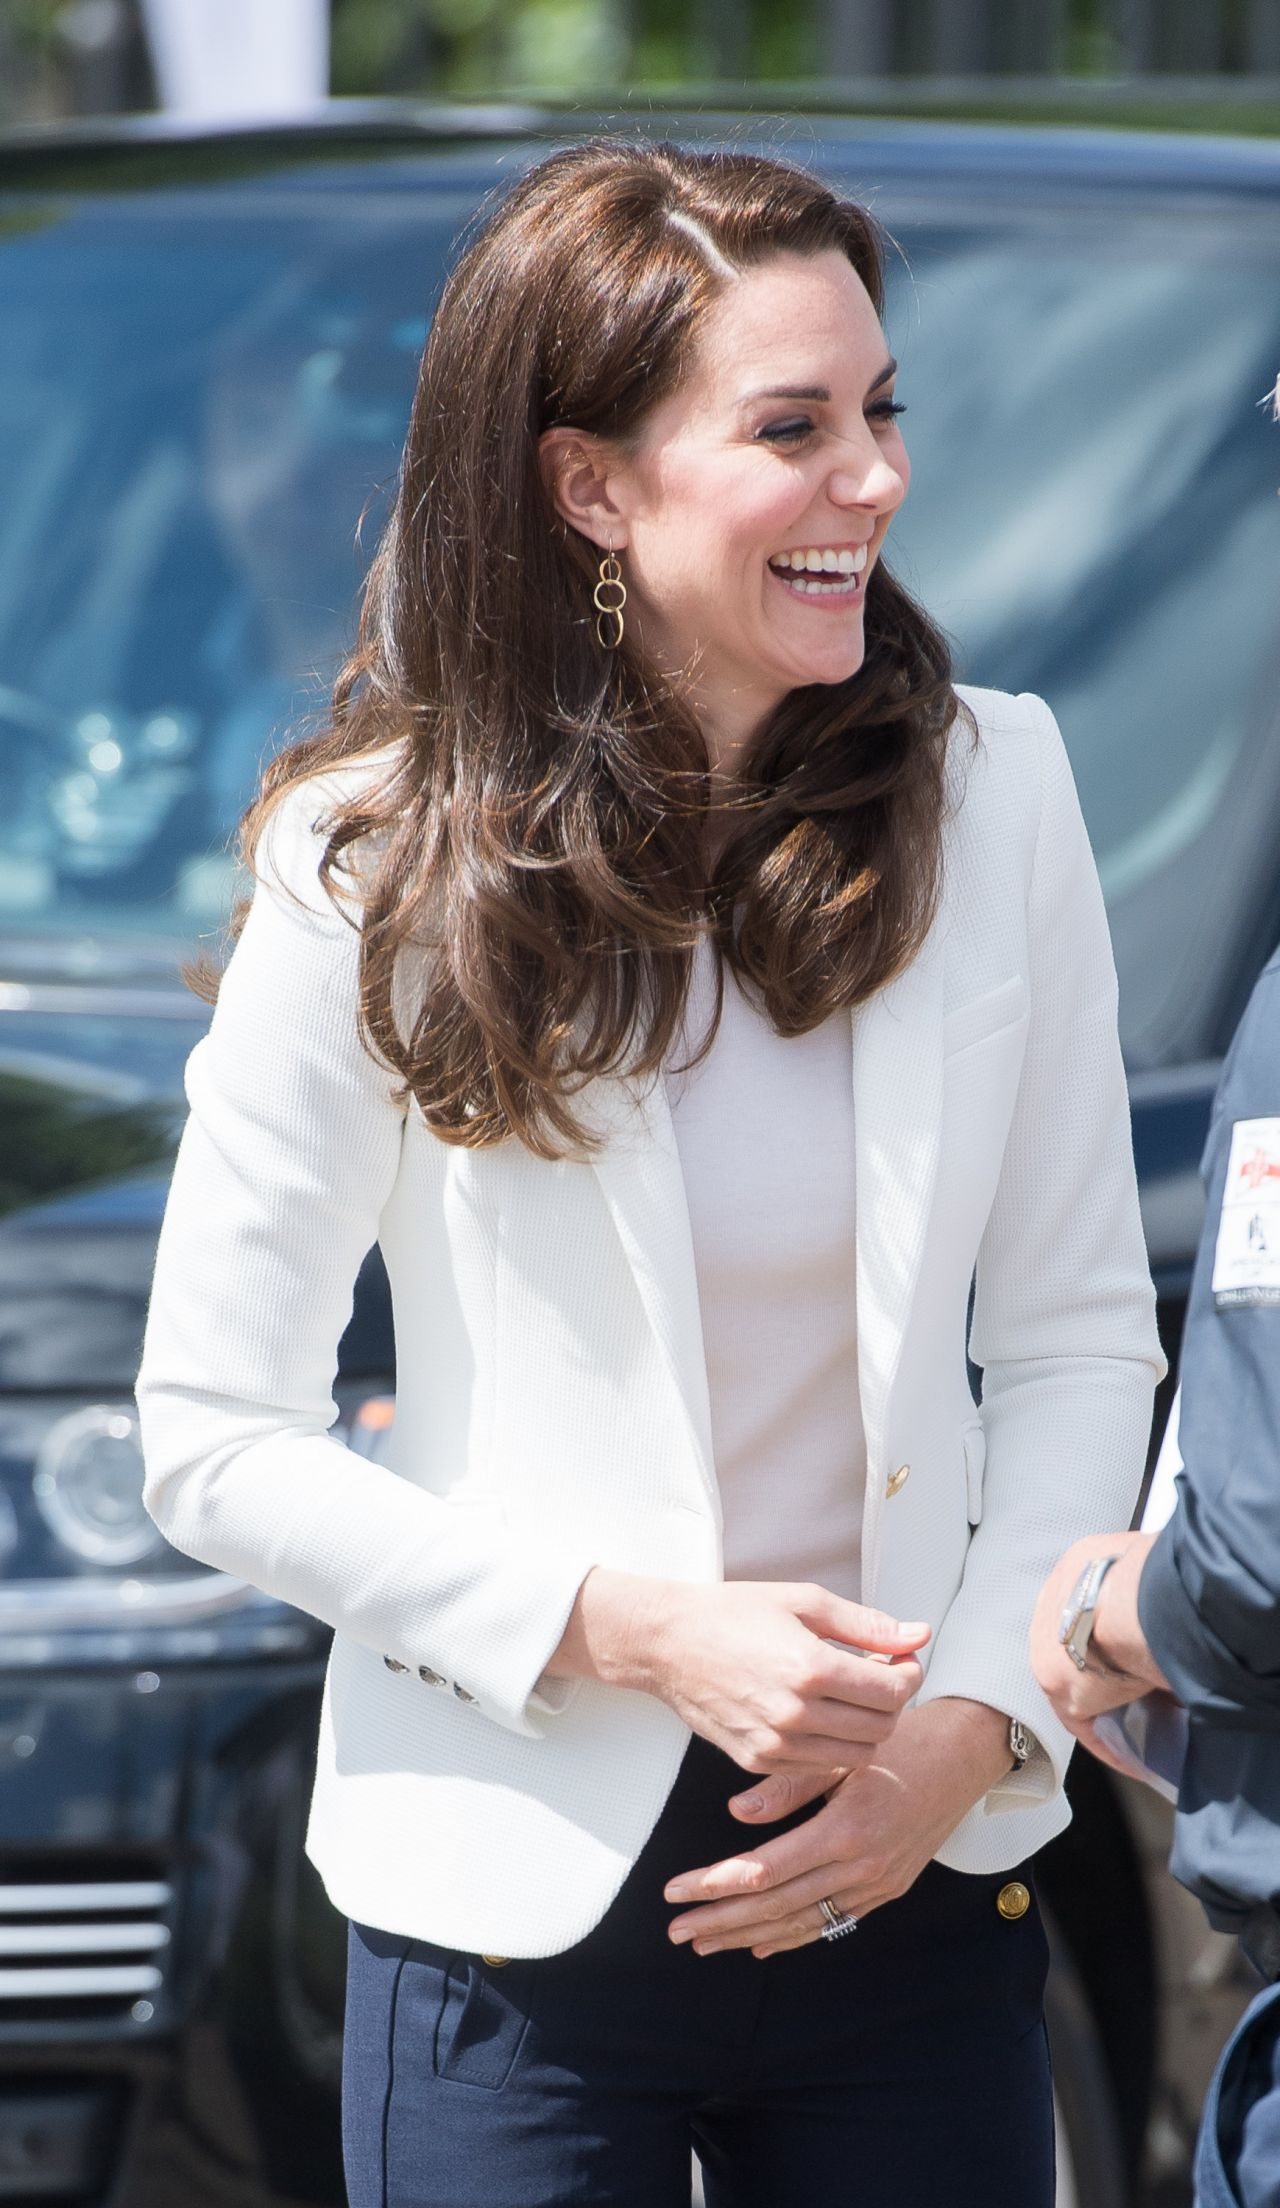 Kate Middleton Visits The 1851 Trust Roadshow In London